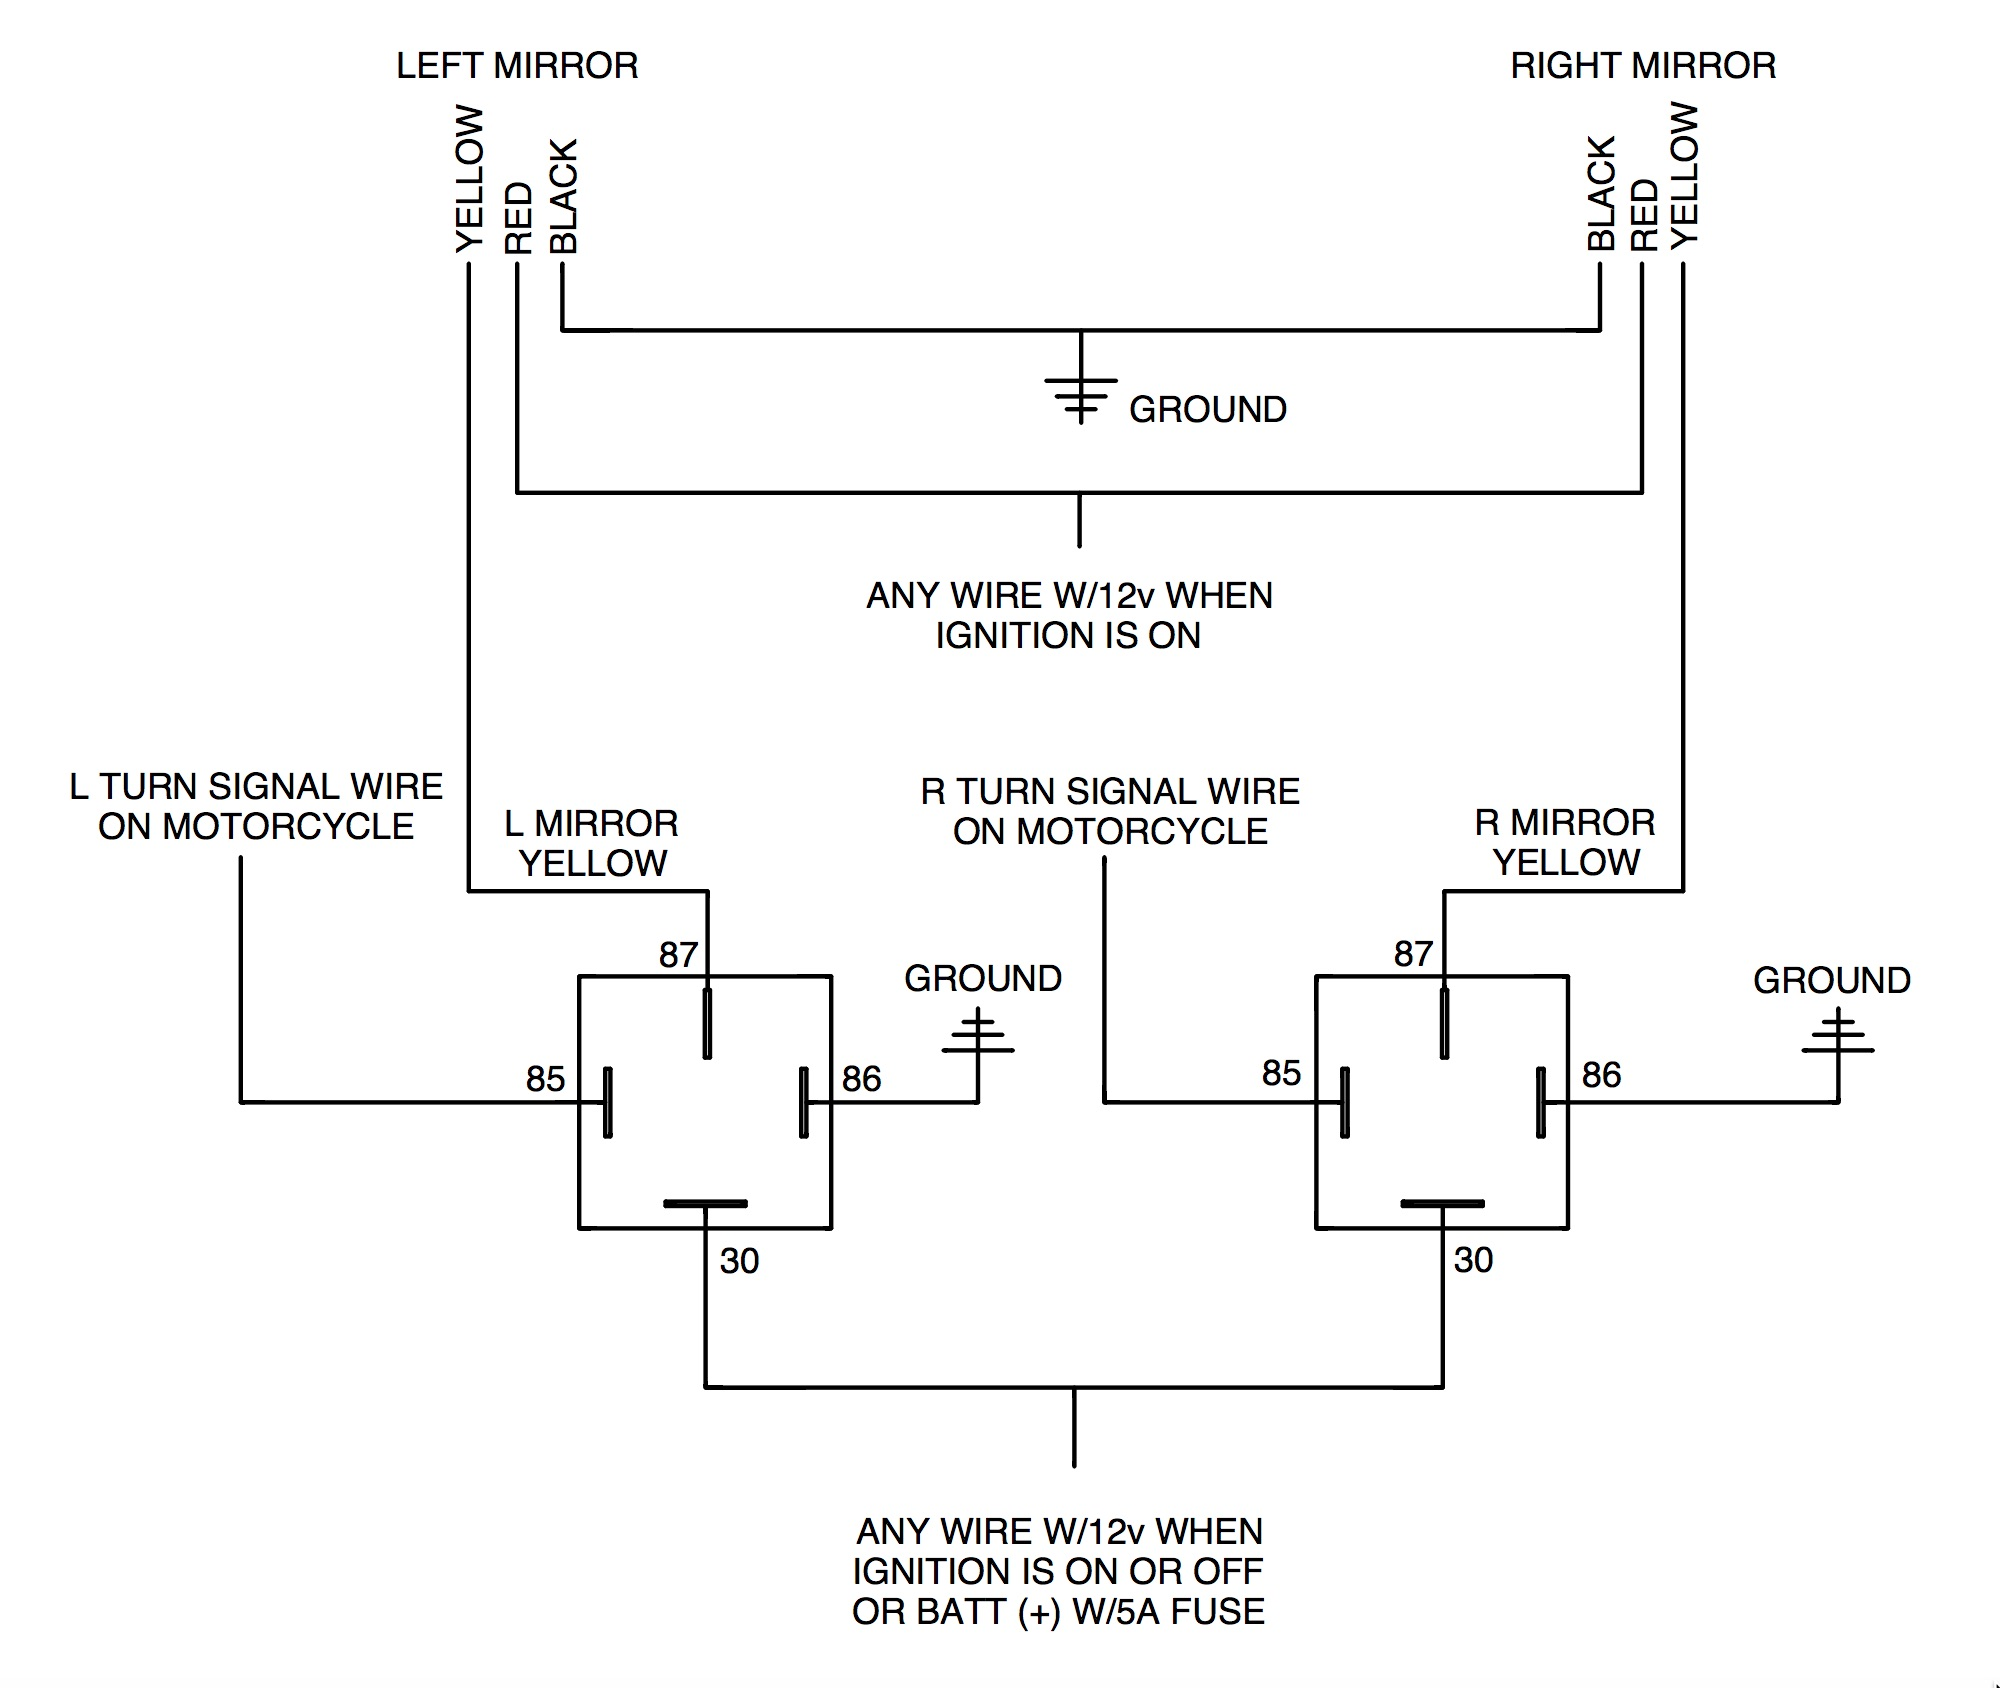 Rivco dual relay diagram adding rivco led mirrors to a victory cross country motorcycle Basic Turn Signal Wiring Diagram at creativeand.co